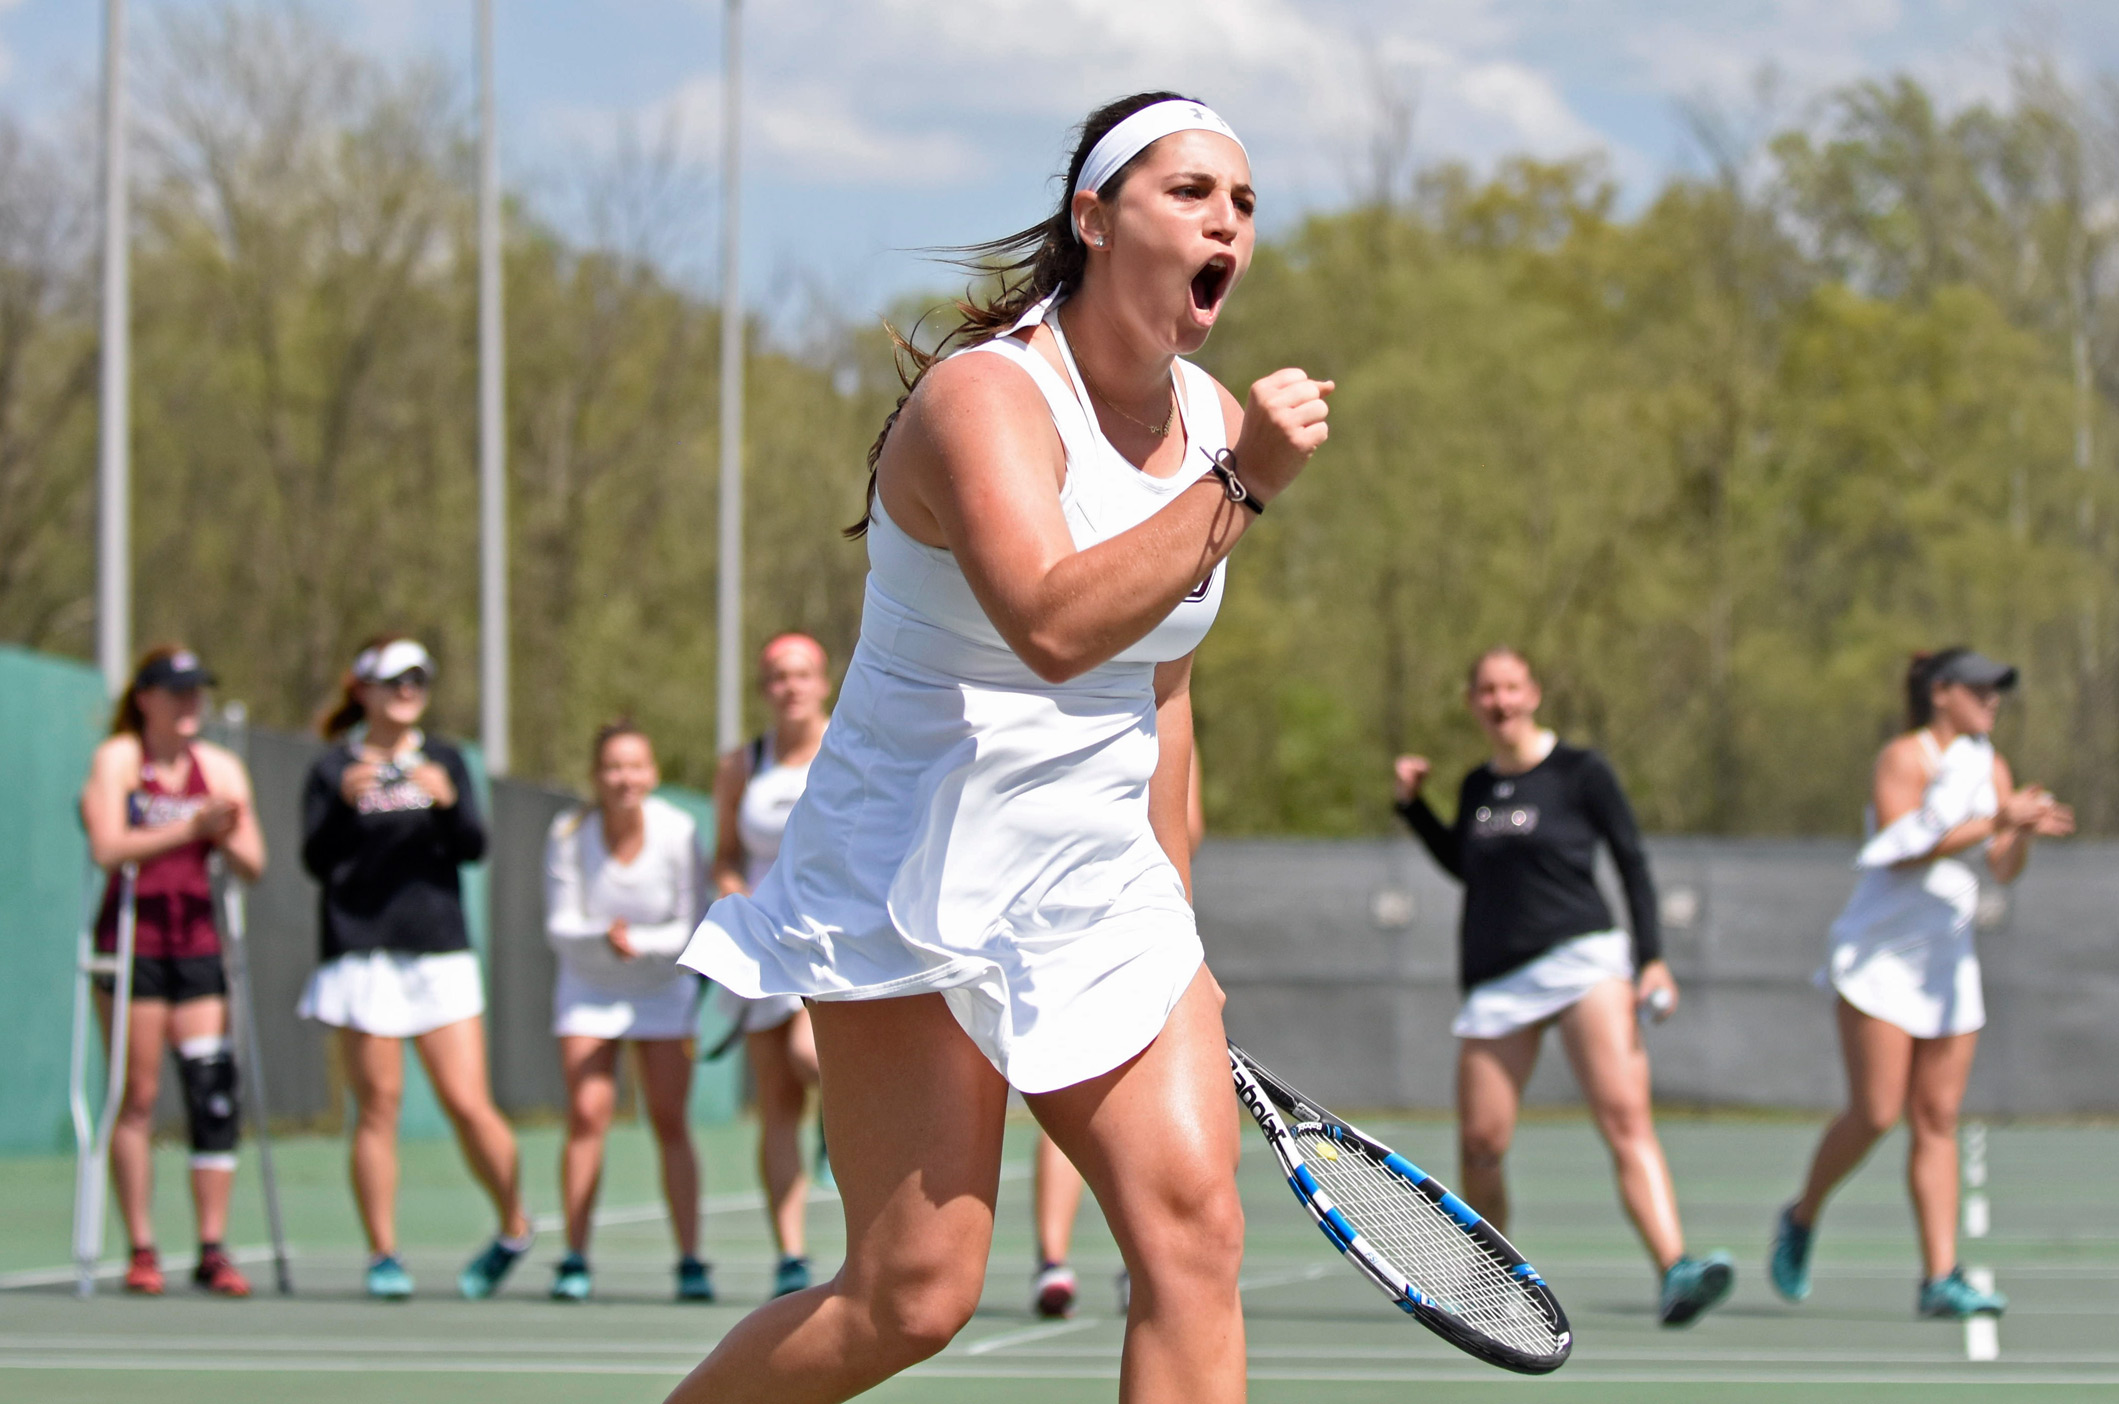 Junior+Vitoria+Beirao+celebrates+after+winning+a+point+during+her+singles+match+on+Saturday%2C+April+15%2C+2017%2C+against+Missouri+State+at+the+University+Courts.+She+won+the+match+6-4%2C+6-4.+The+Salukis+beat+the+Bears+6-1.+%28Anna+Spoerre+%7C+%40annaspoerre%29%0A